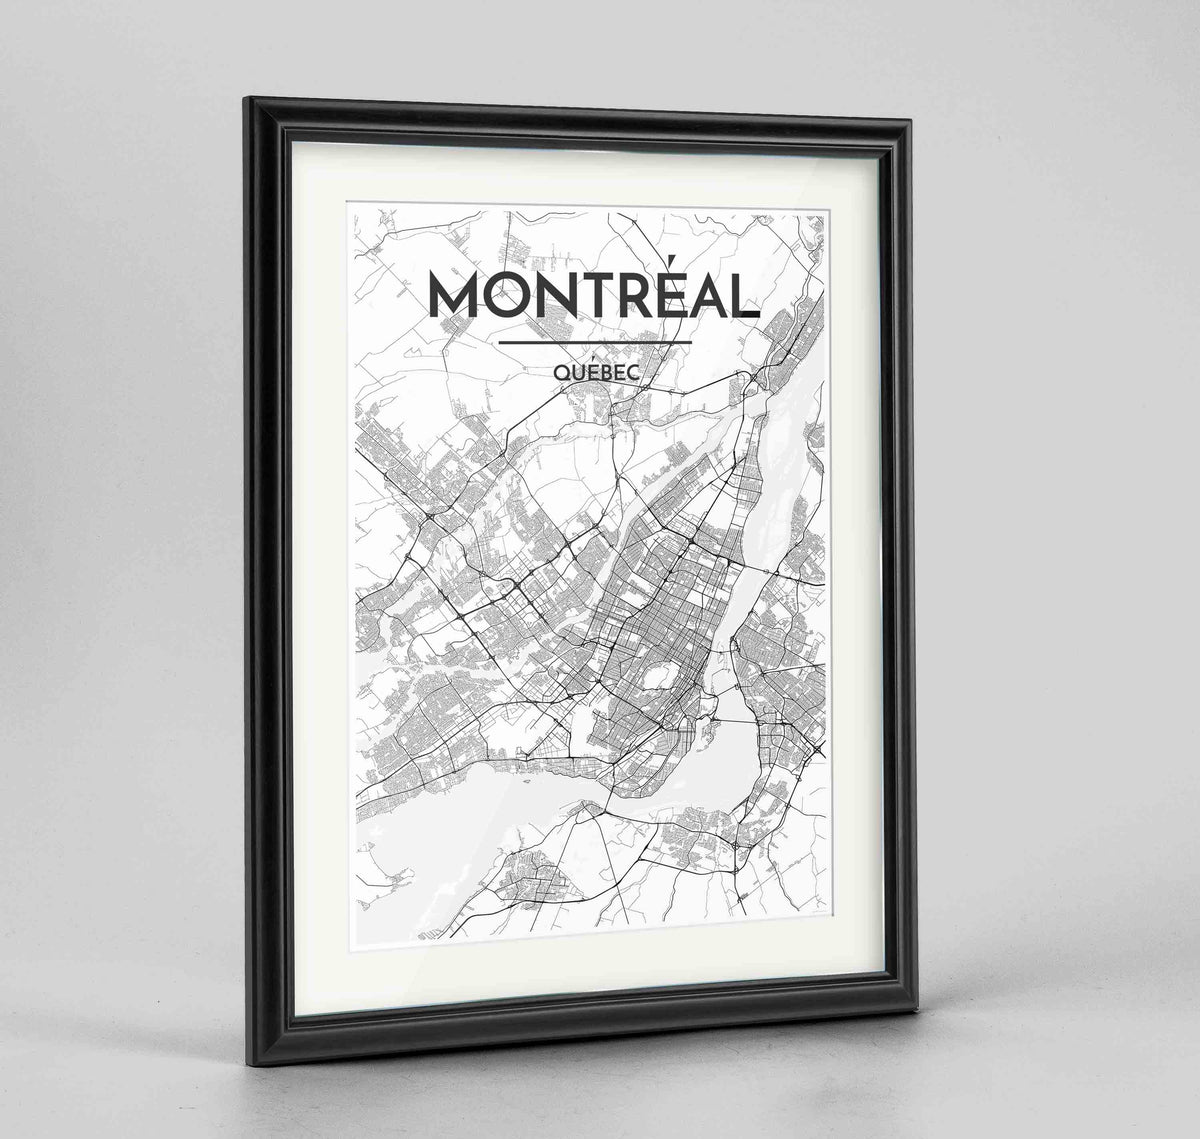 "Framed Montreal City Map 24x36"" Traditional Black frame Point Two Design Group"